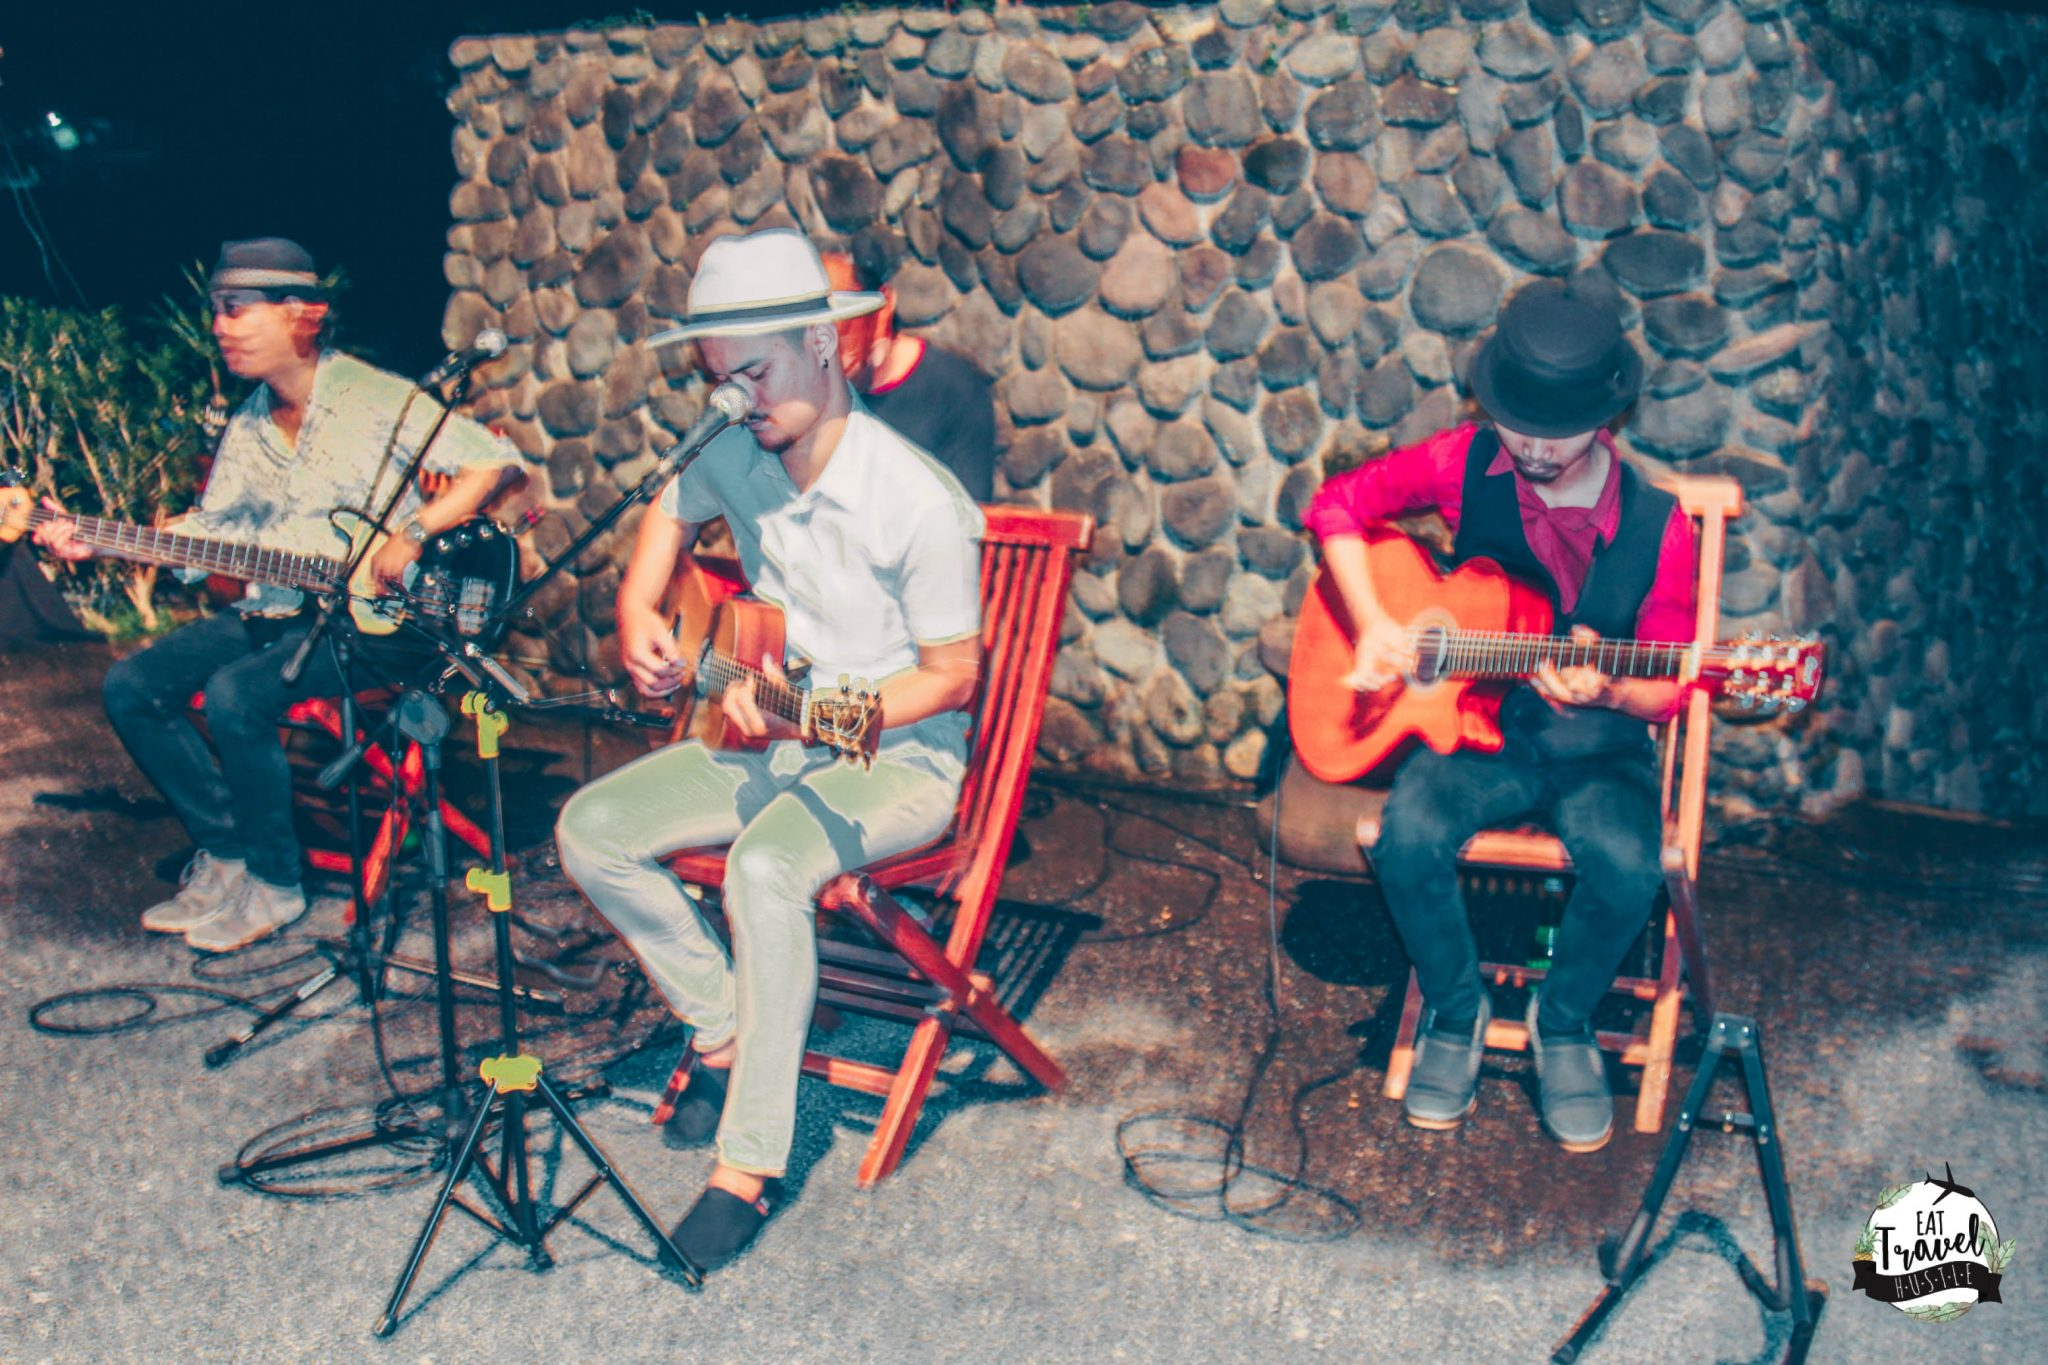 Wonderful local live band performance at Alila Ubud